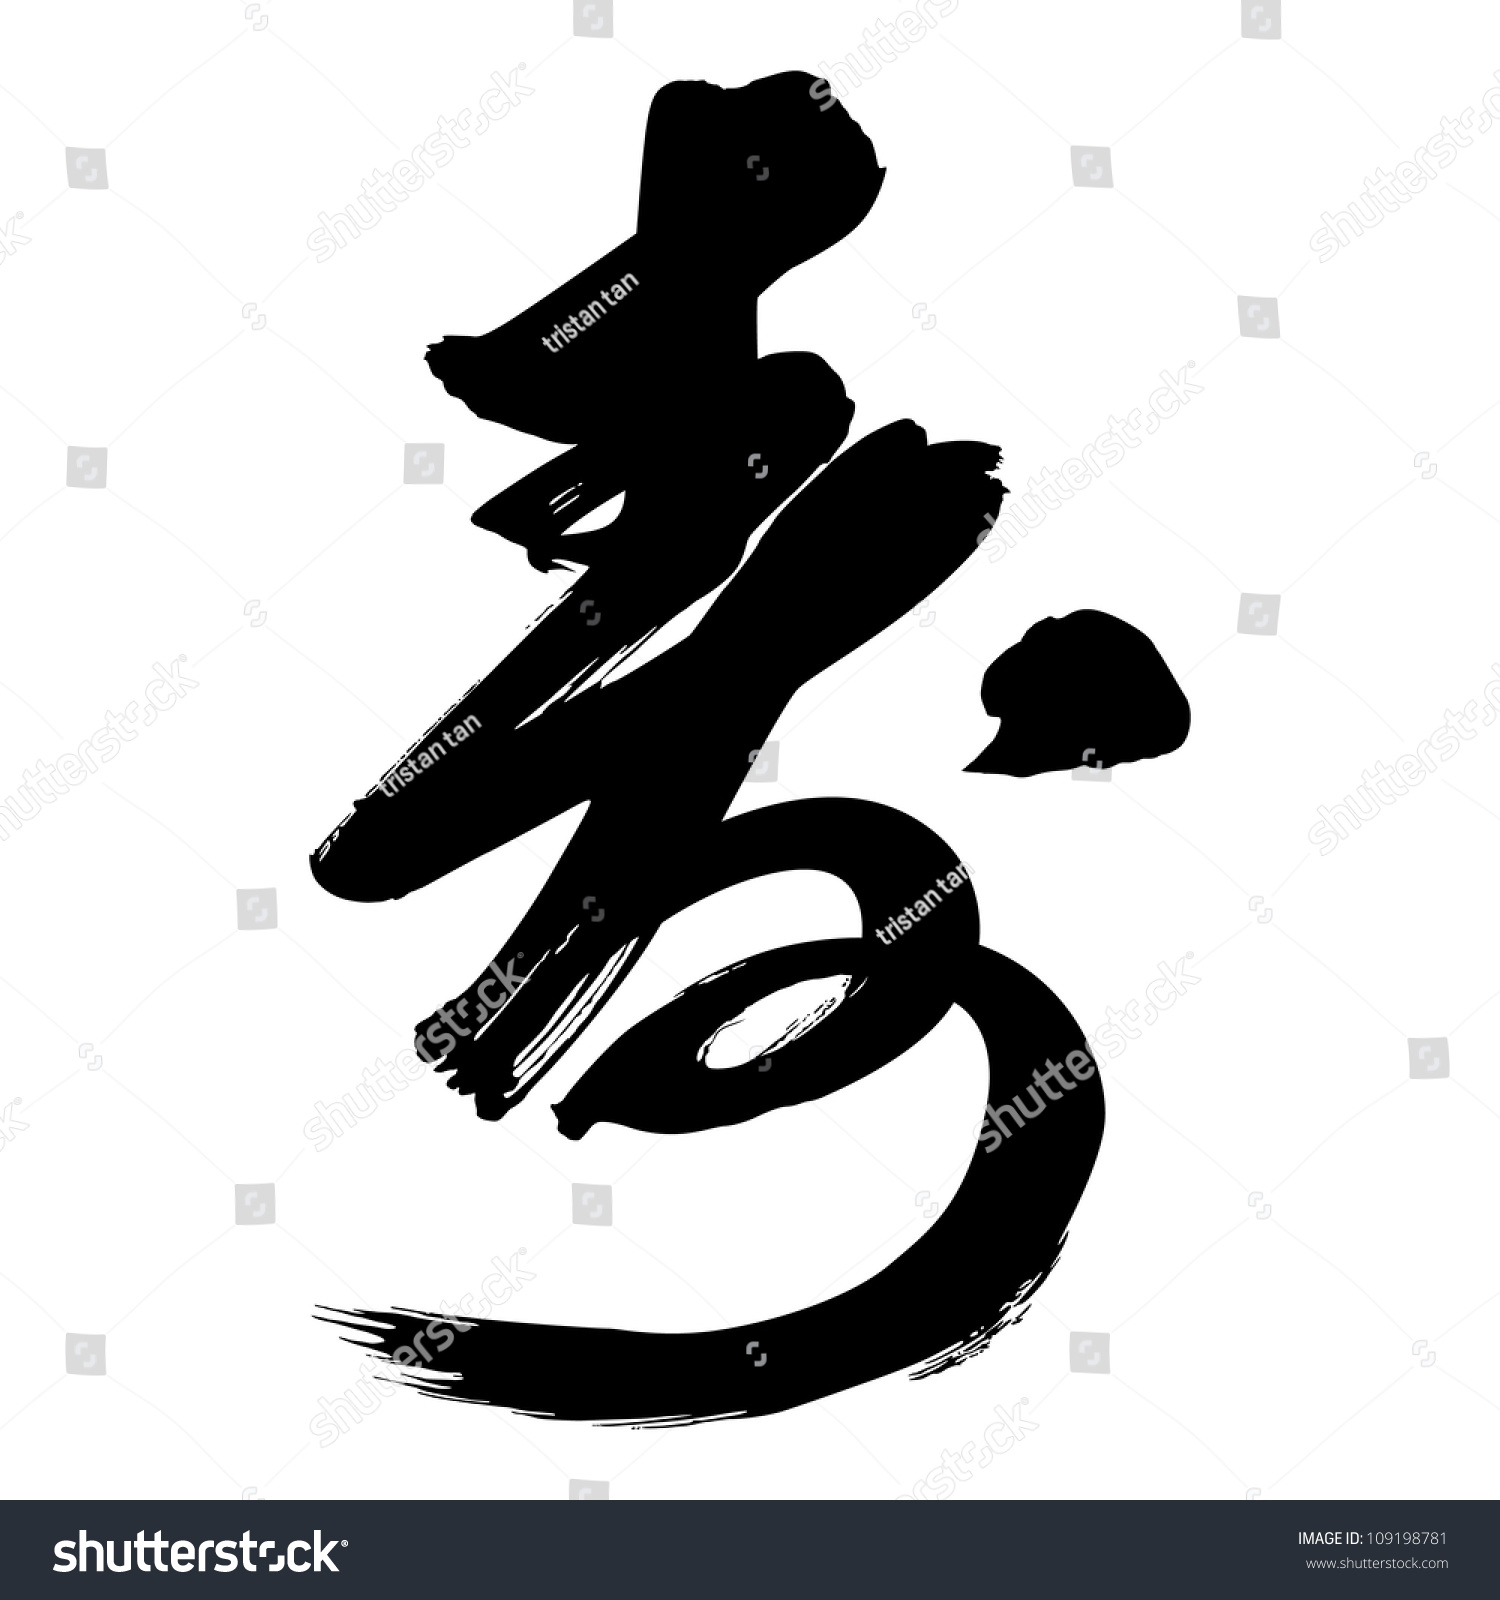 Chinese calligraphy shou long life old stock vector 109198781 chinese calligraphy shou long life old age age life biocorpaavc Gallery